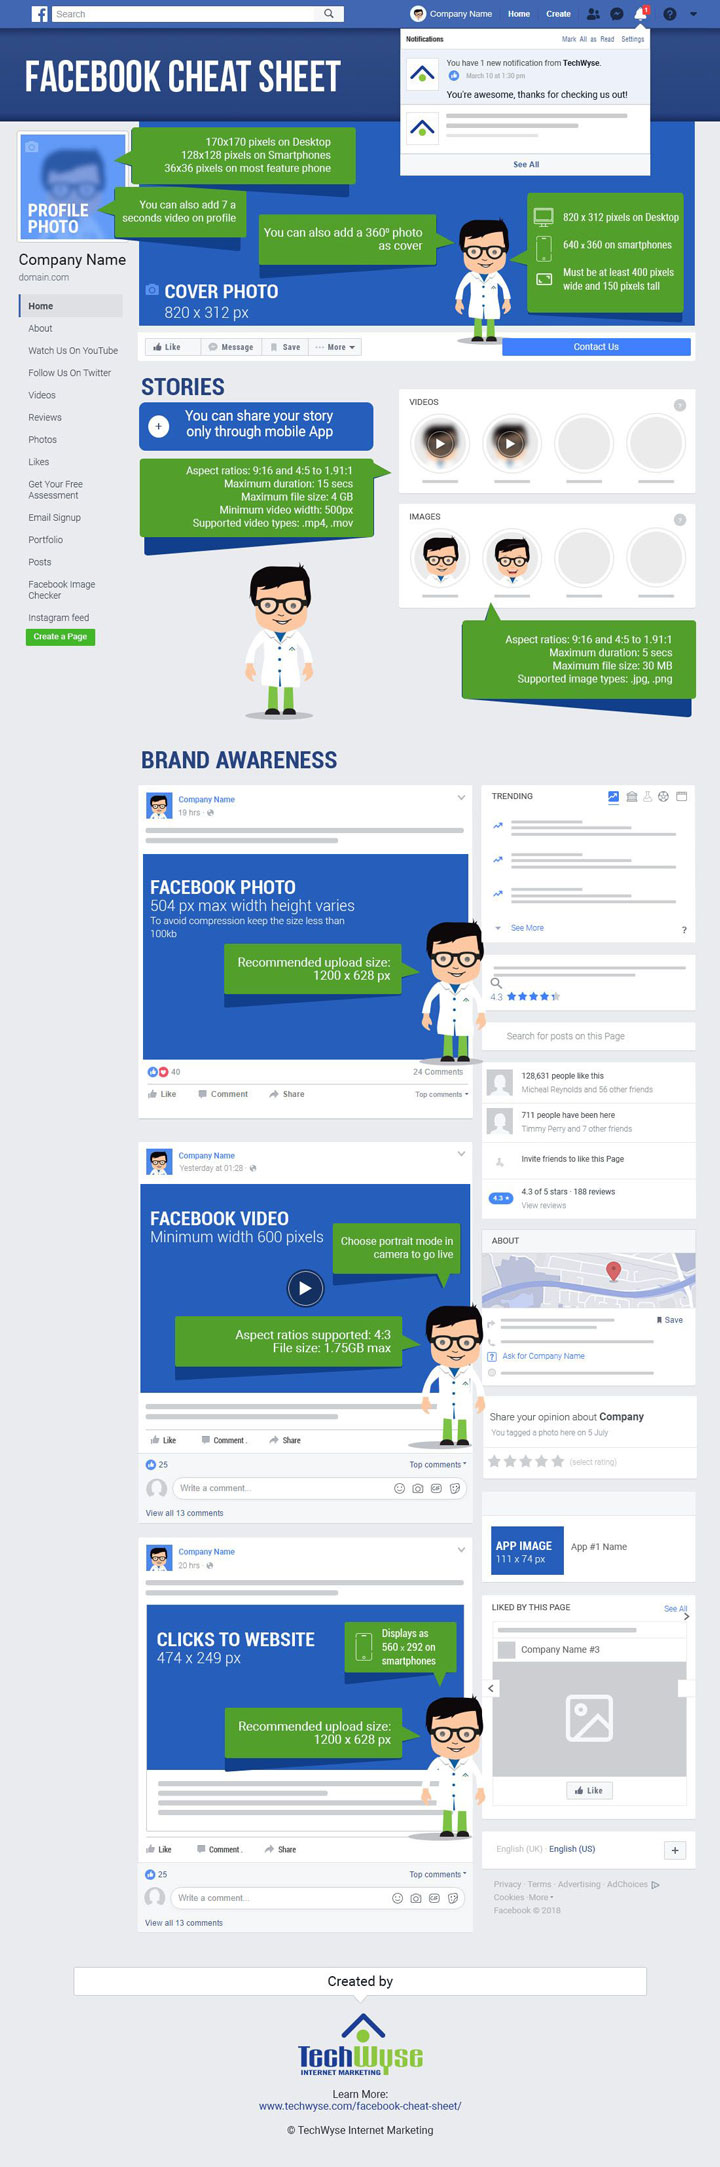 -7facebook-page-image-dimensions-infographic